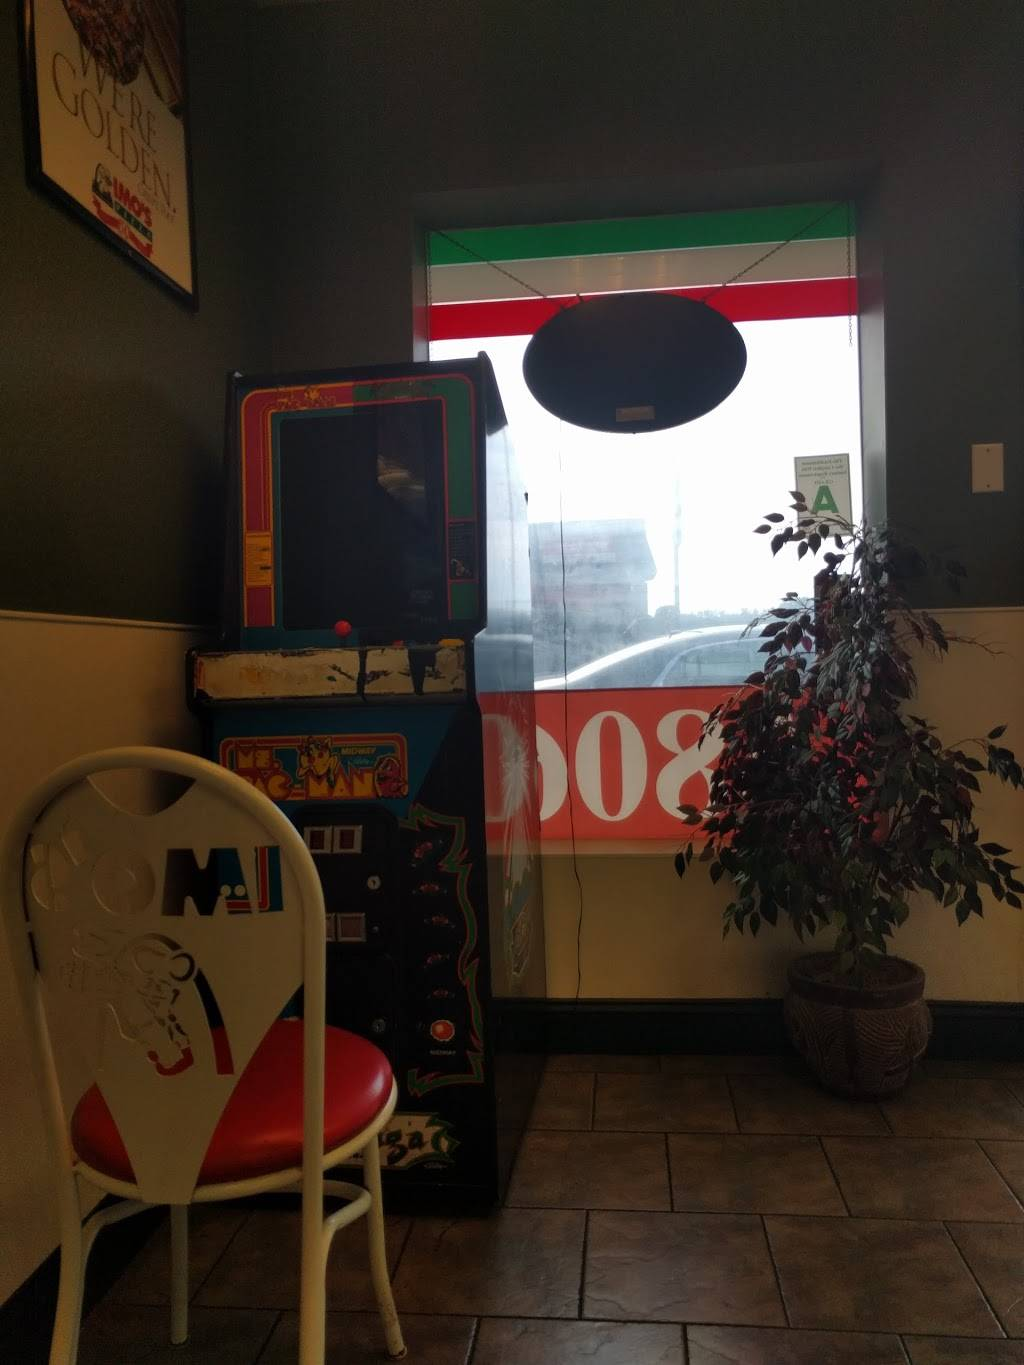 Imos Pizza - meal delivery  | Photo 7 of 10 | Address: 5806 Hampton Ave, St. Louis, MO 63109, USA | Phone: (314) 832-9677